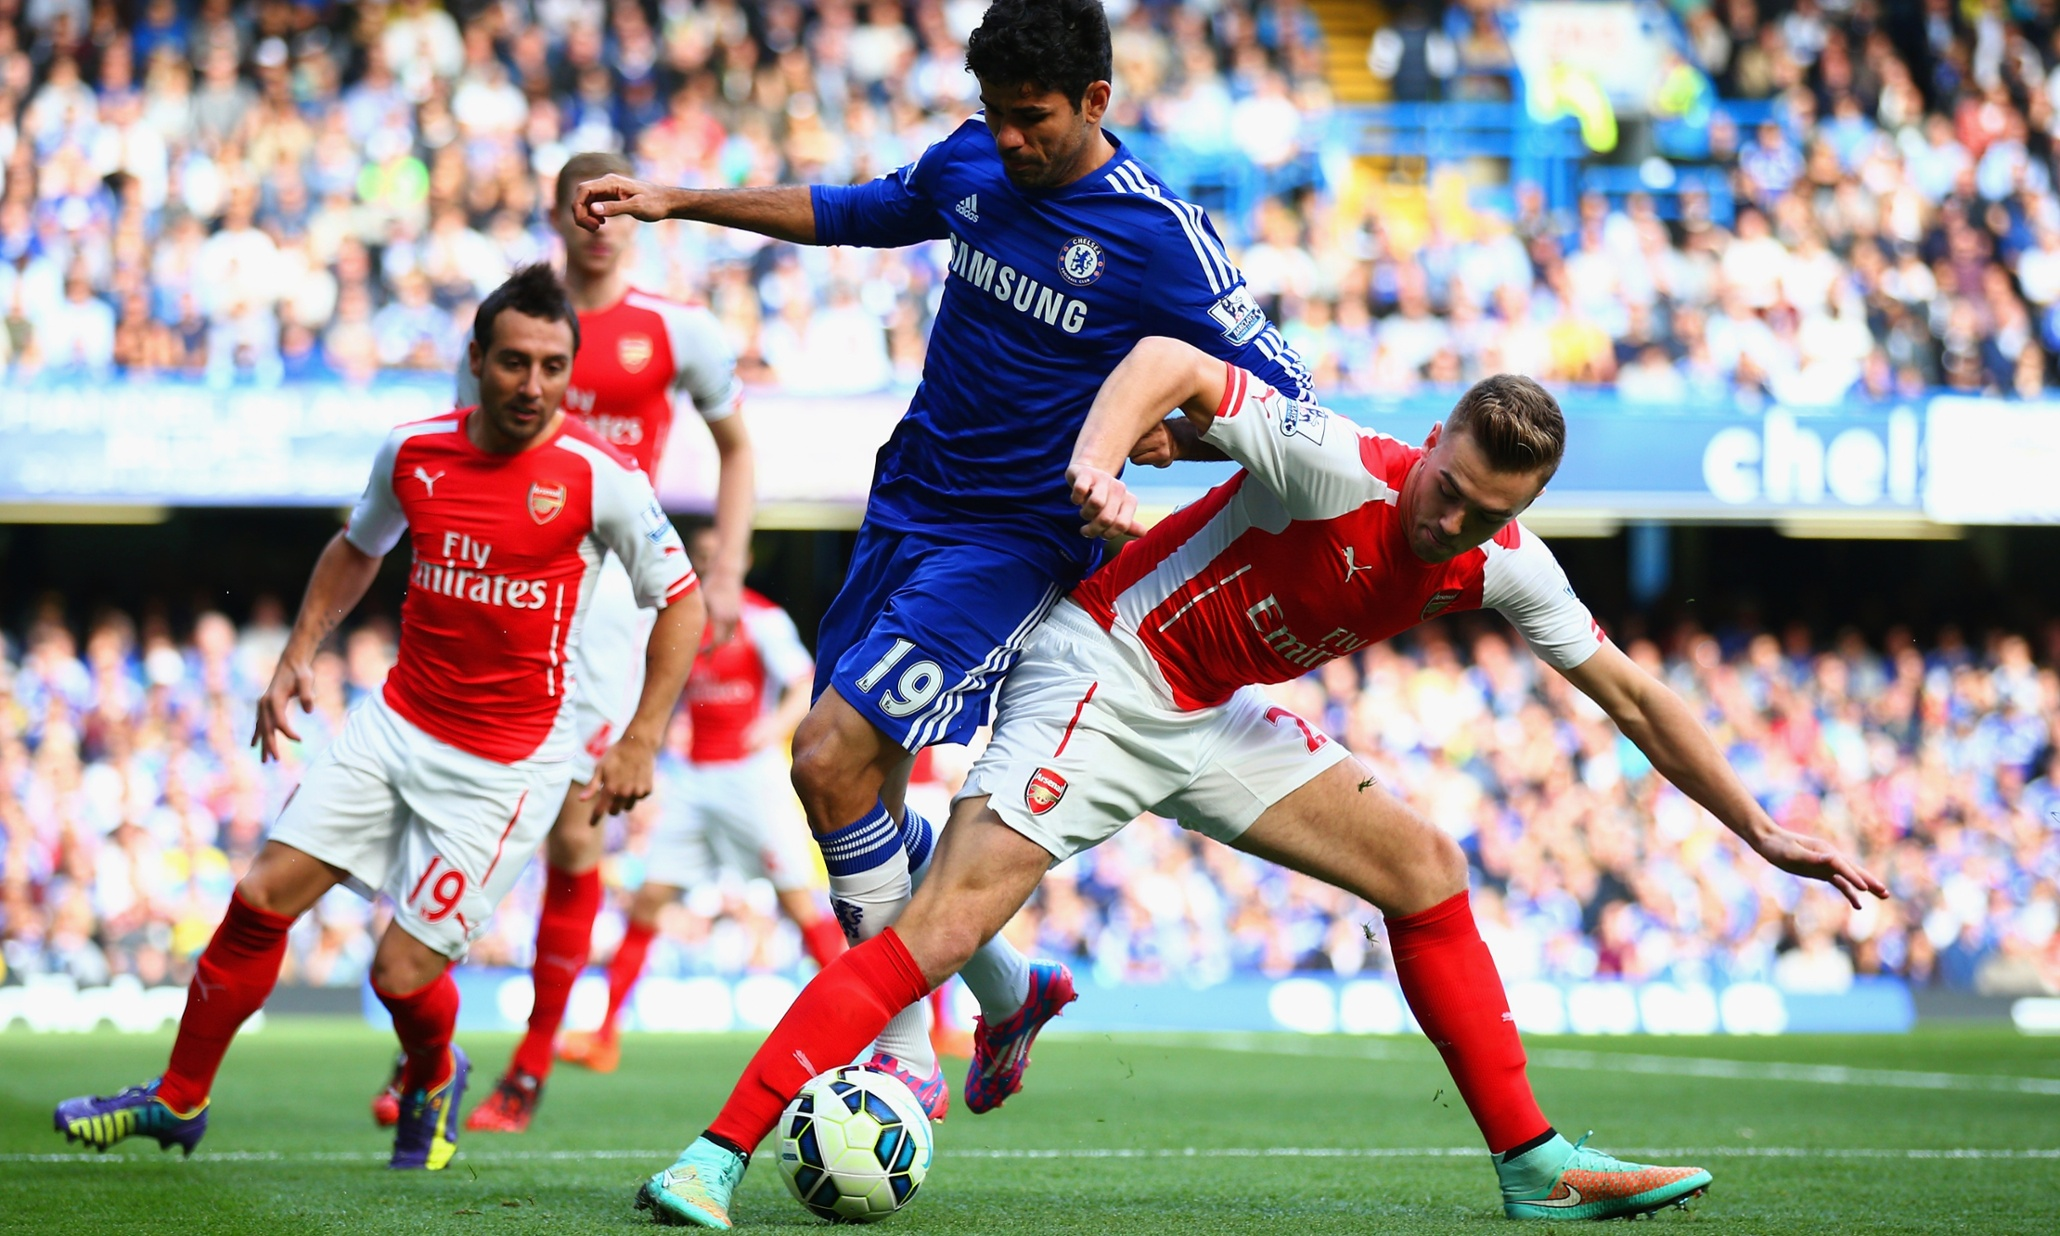 LONDON, ENGLAND - OCTOBER 05:  Diego Costa of Chelsea and Calum Chambers of Arsenal battle for the ball during the Barclays Premier League match between Chelsea and Arsenal at Stamford Bridge on October 4, 2014 in London, England.  (Photo by Paul Gilham/Getty Images)